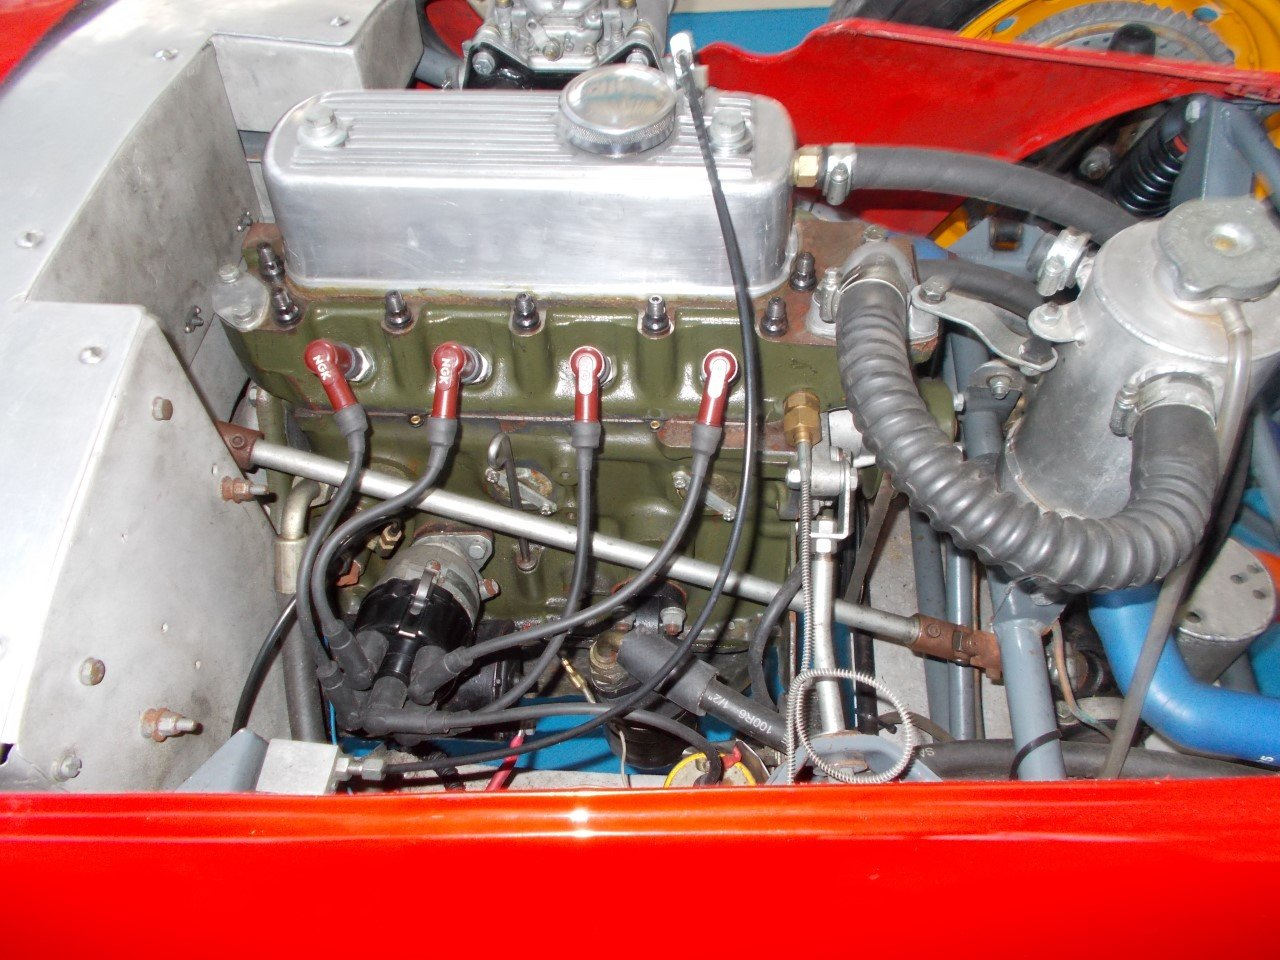 ELVA 100 FORMULA JUNIOR 1959 For Sale (picture 4 of 6)